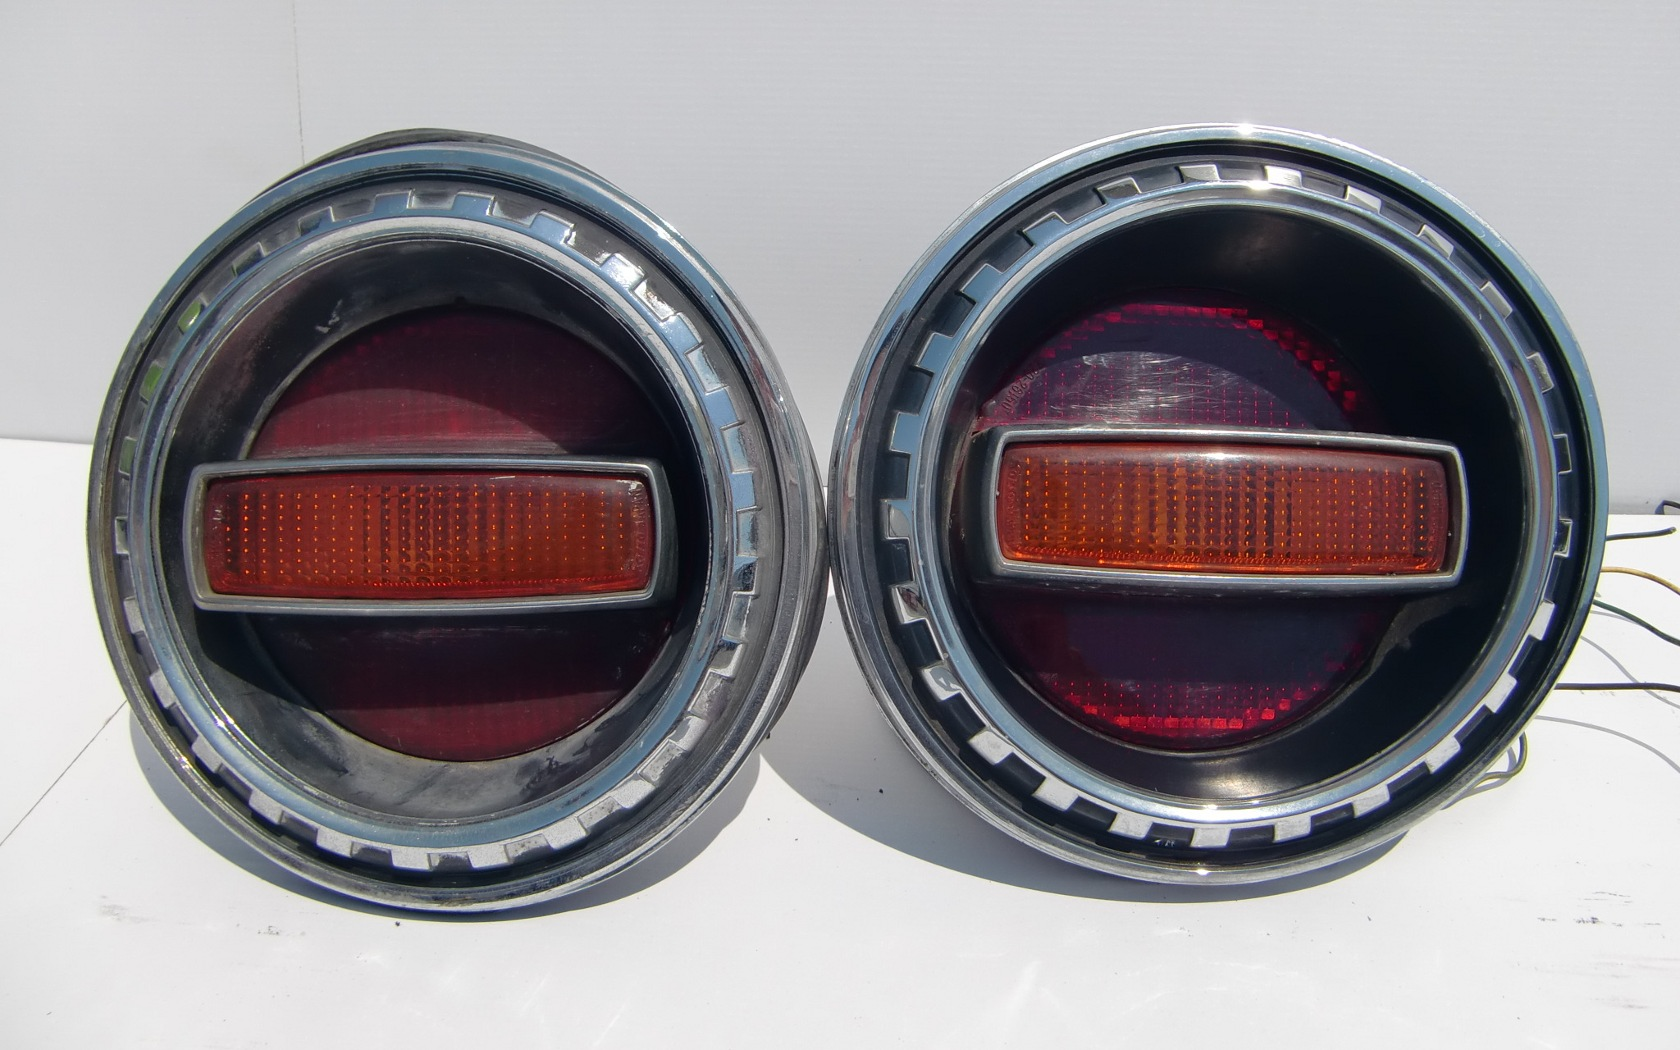 Nissan Cherry X-1R tail lights